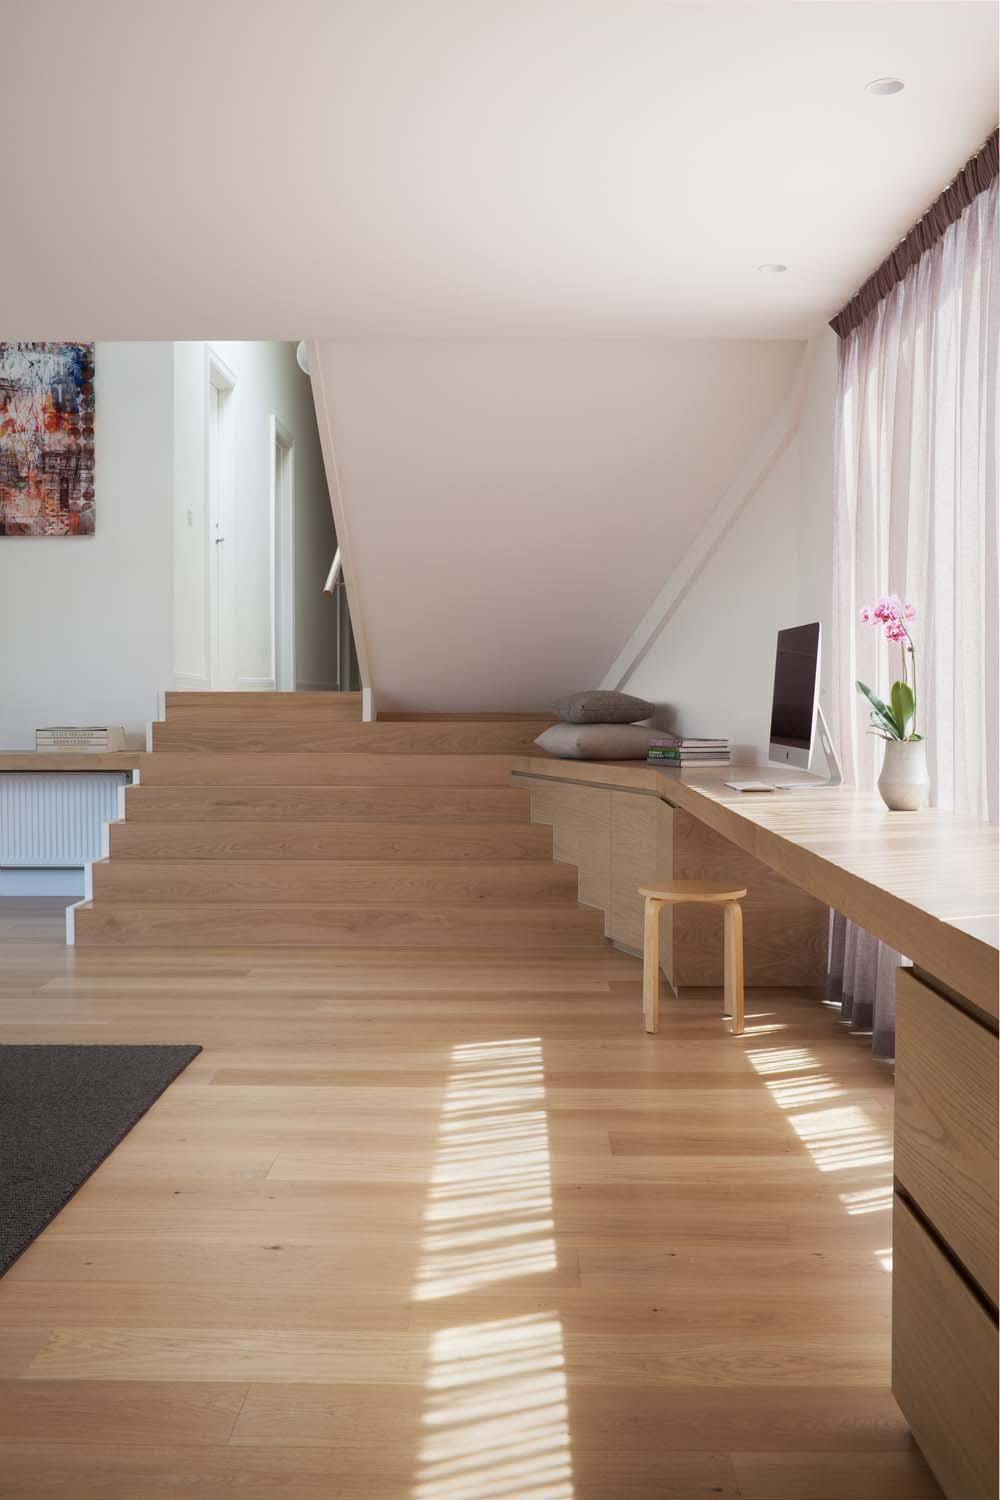 Hill House - a Melbourne Dwelling by Rachcoff Vella Architecture